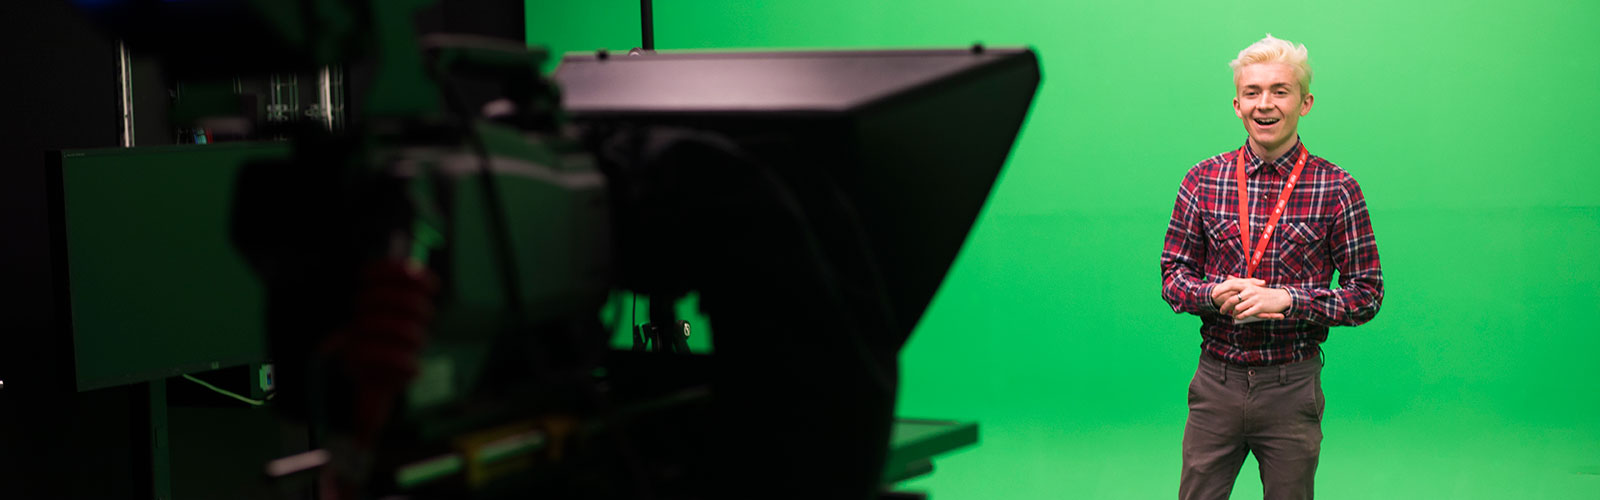 Image: Oliver in front of a green screen